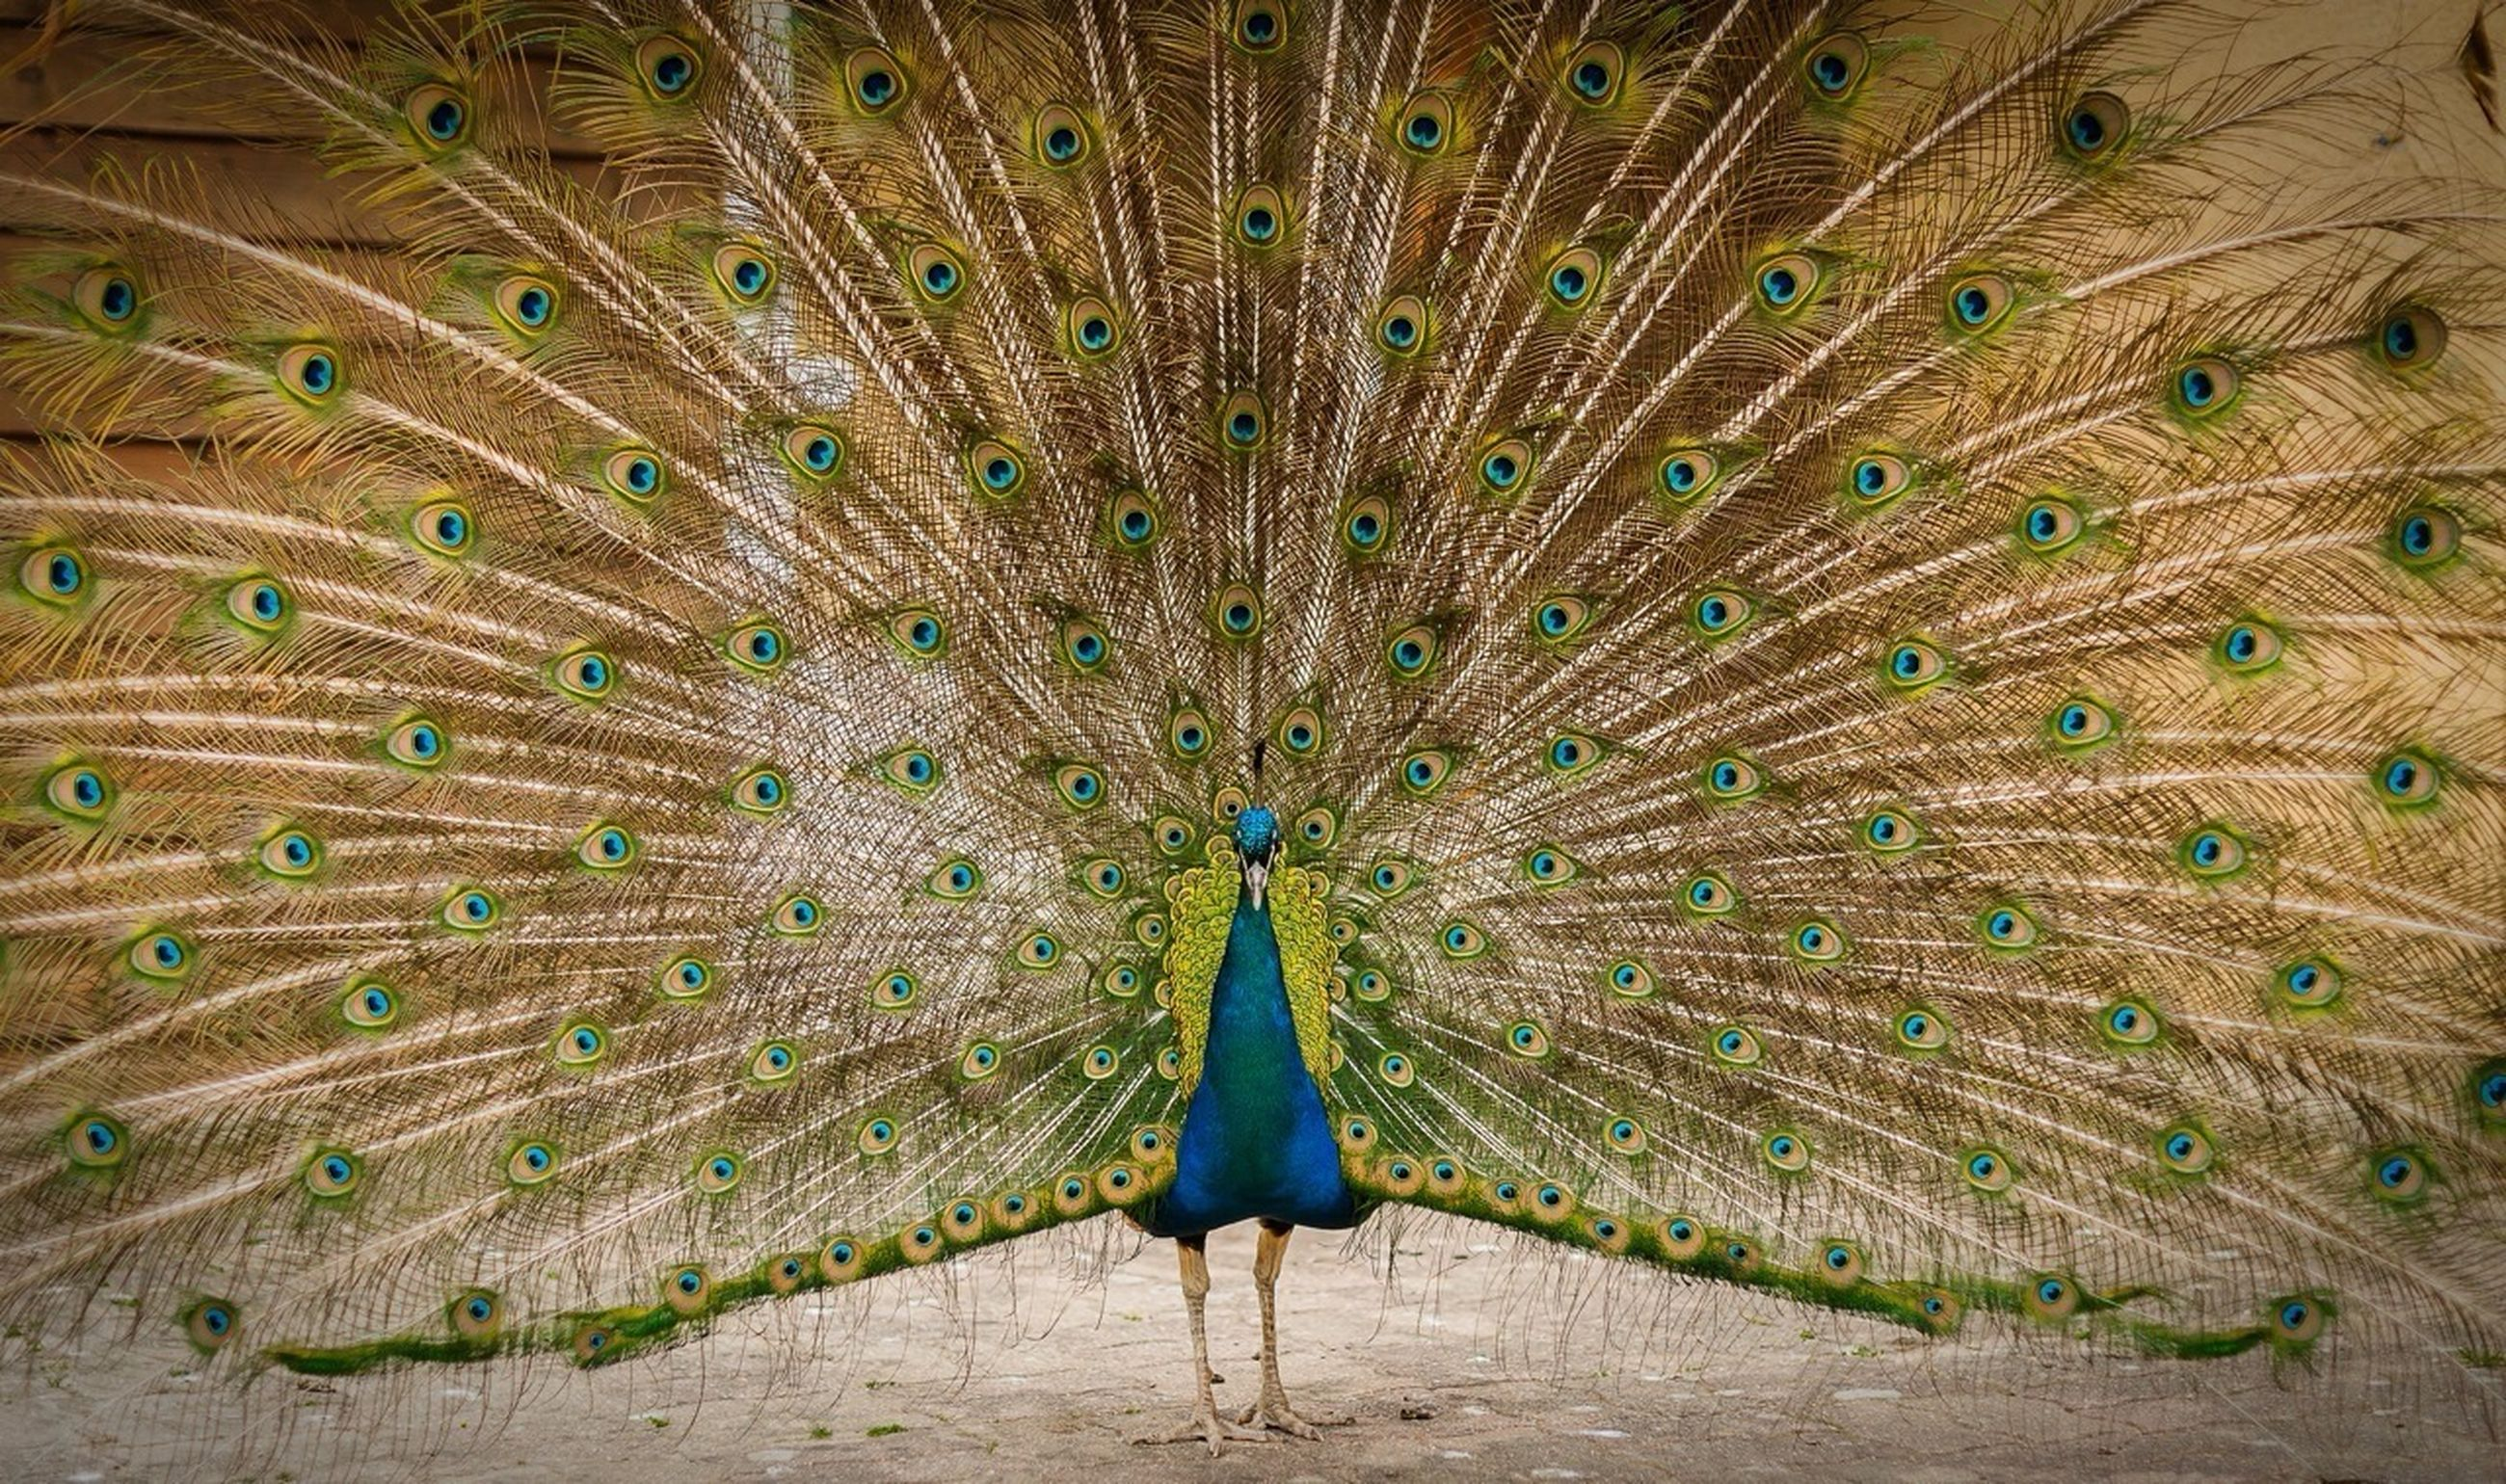 peacock, feather, one animal, animal themes, nature, beauty in nature, field, green color, pattern, natural pattern, outdoors, full length, wildlife, bird, grass, no people, growth, day, animals in the wild, tranquility